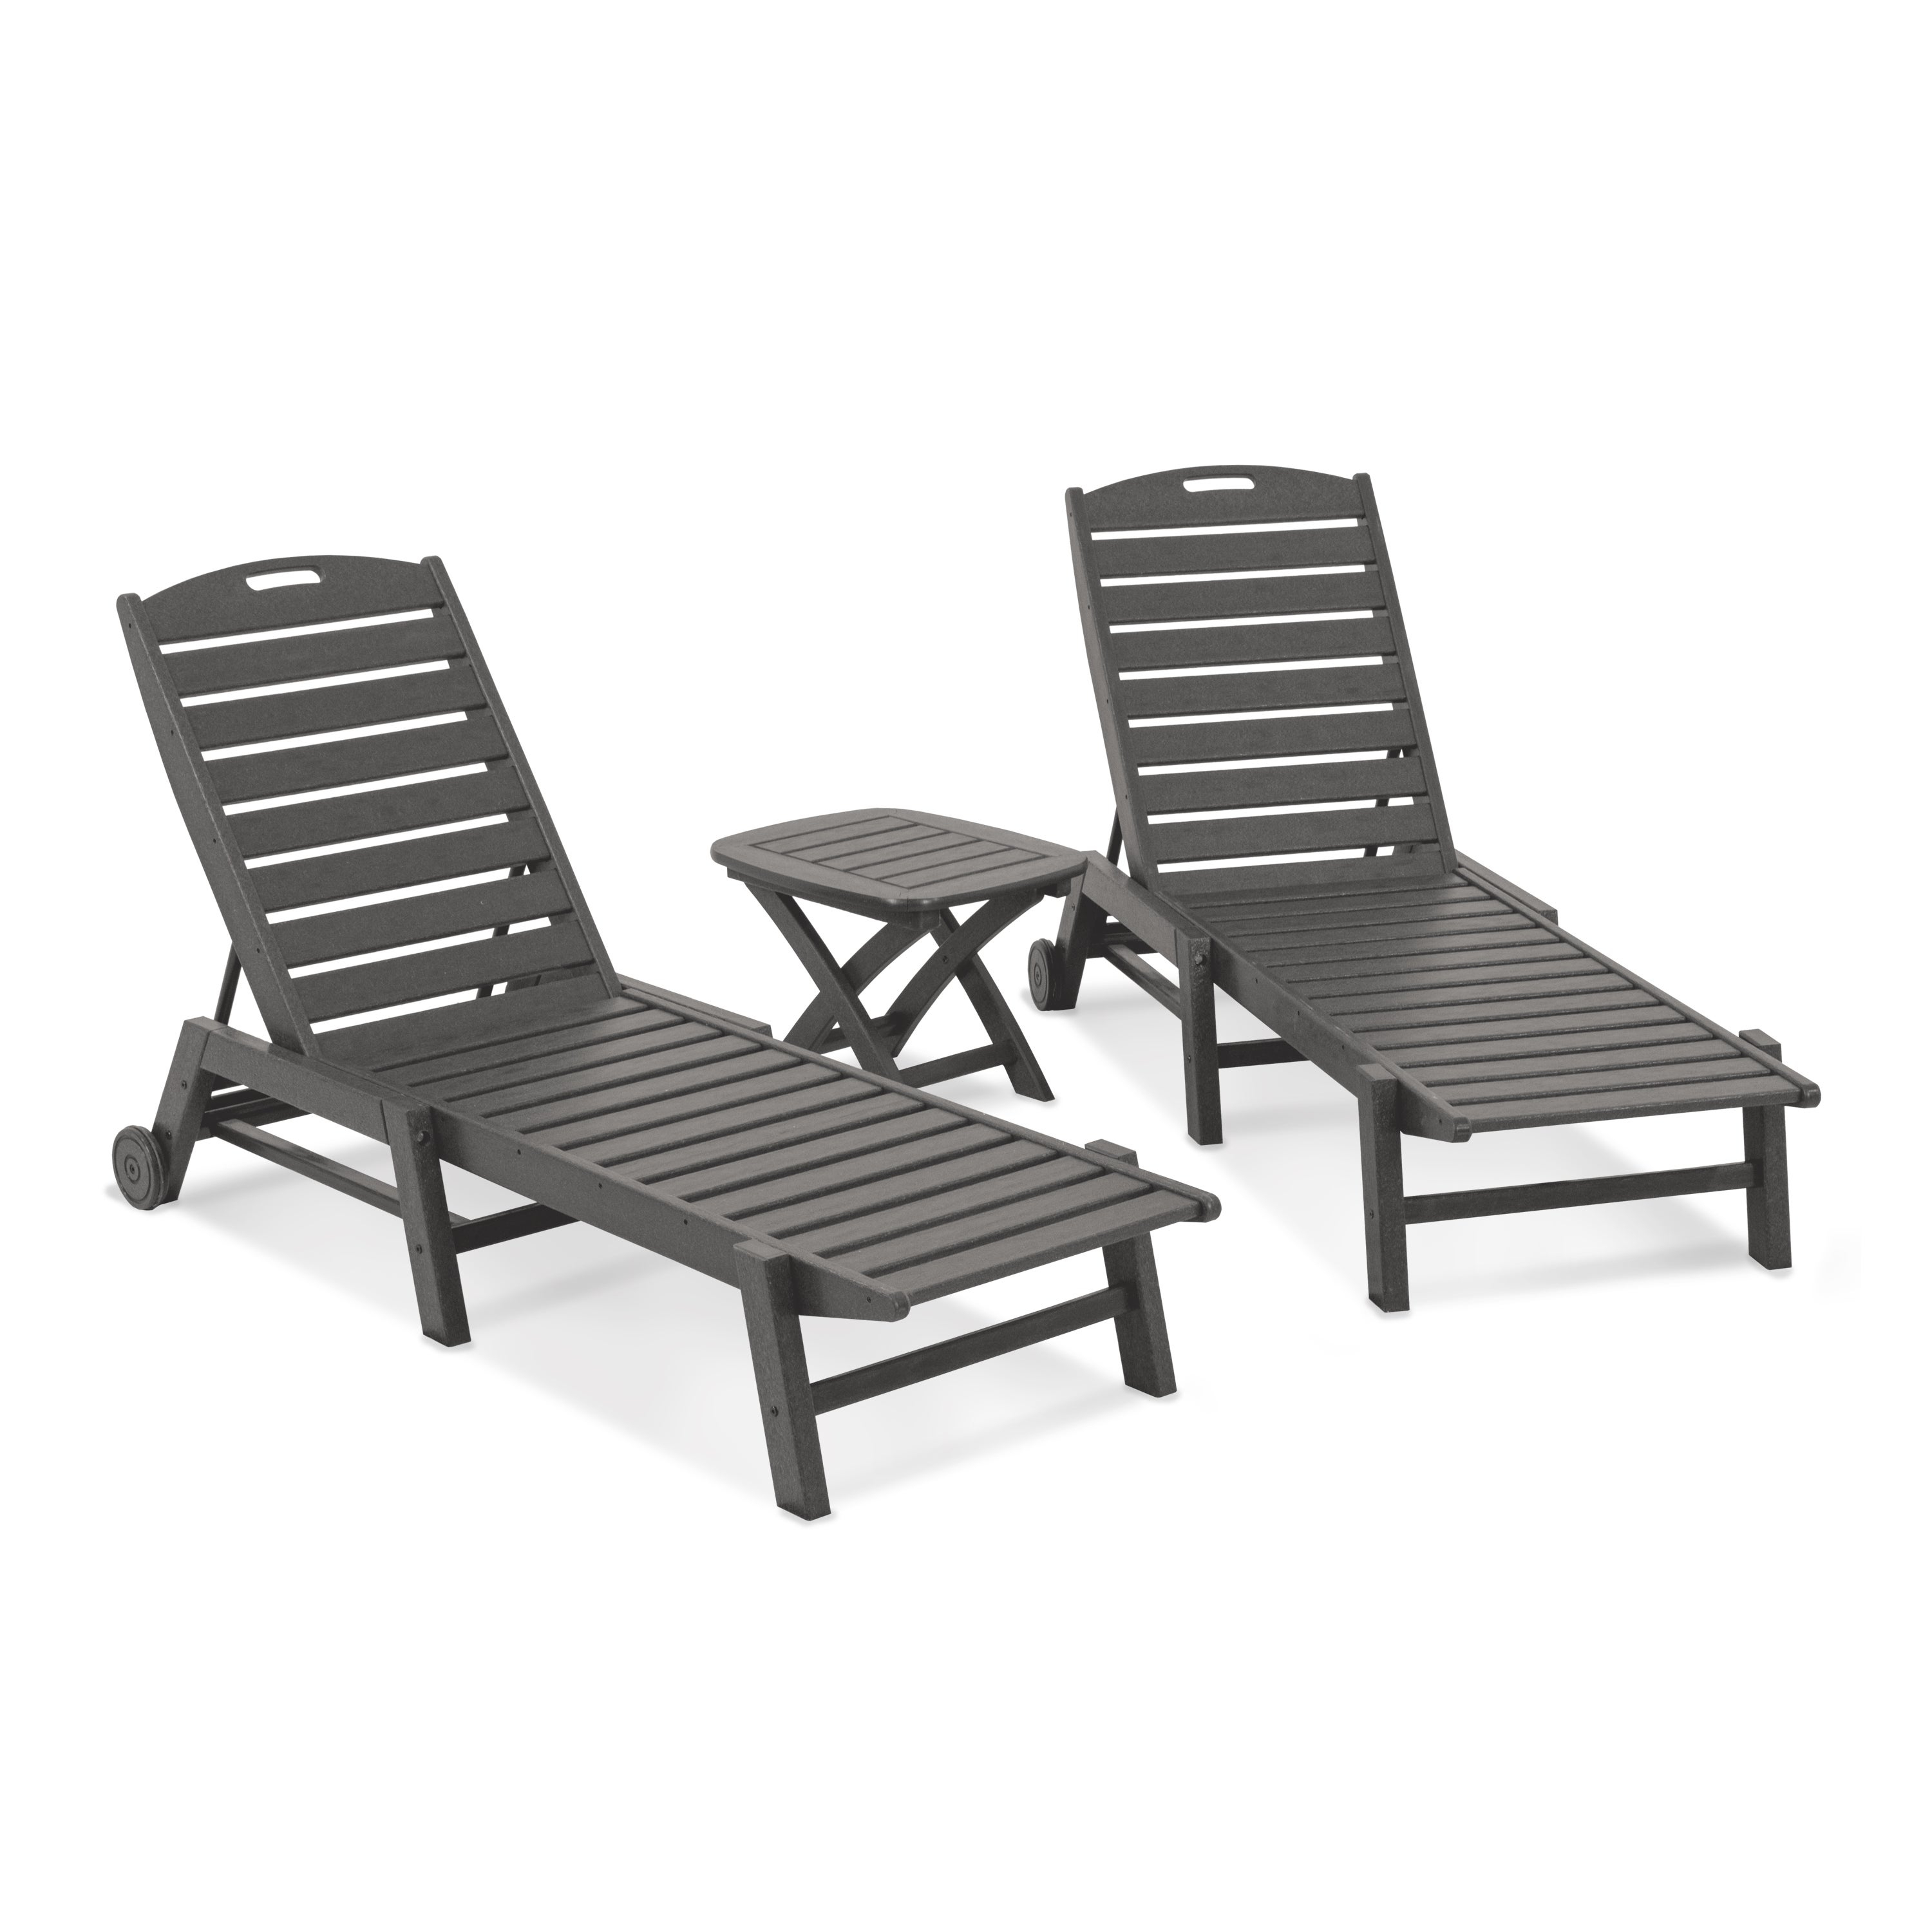 Preferred Nautical 3 Piece Outdoor Chaise Lounge Sets With Table With Polywood® Nautical 3 Piece Outdoor Chaise Lounge Set With Table (Gallery 3 of 25)